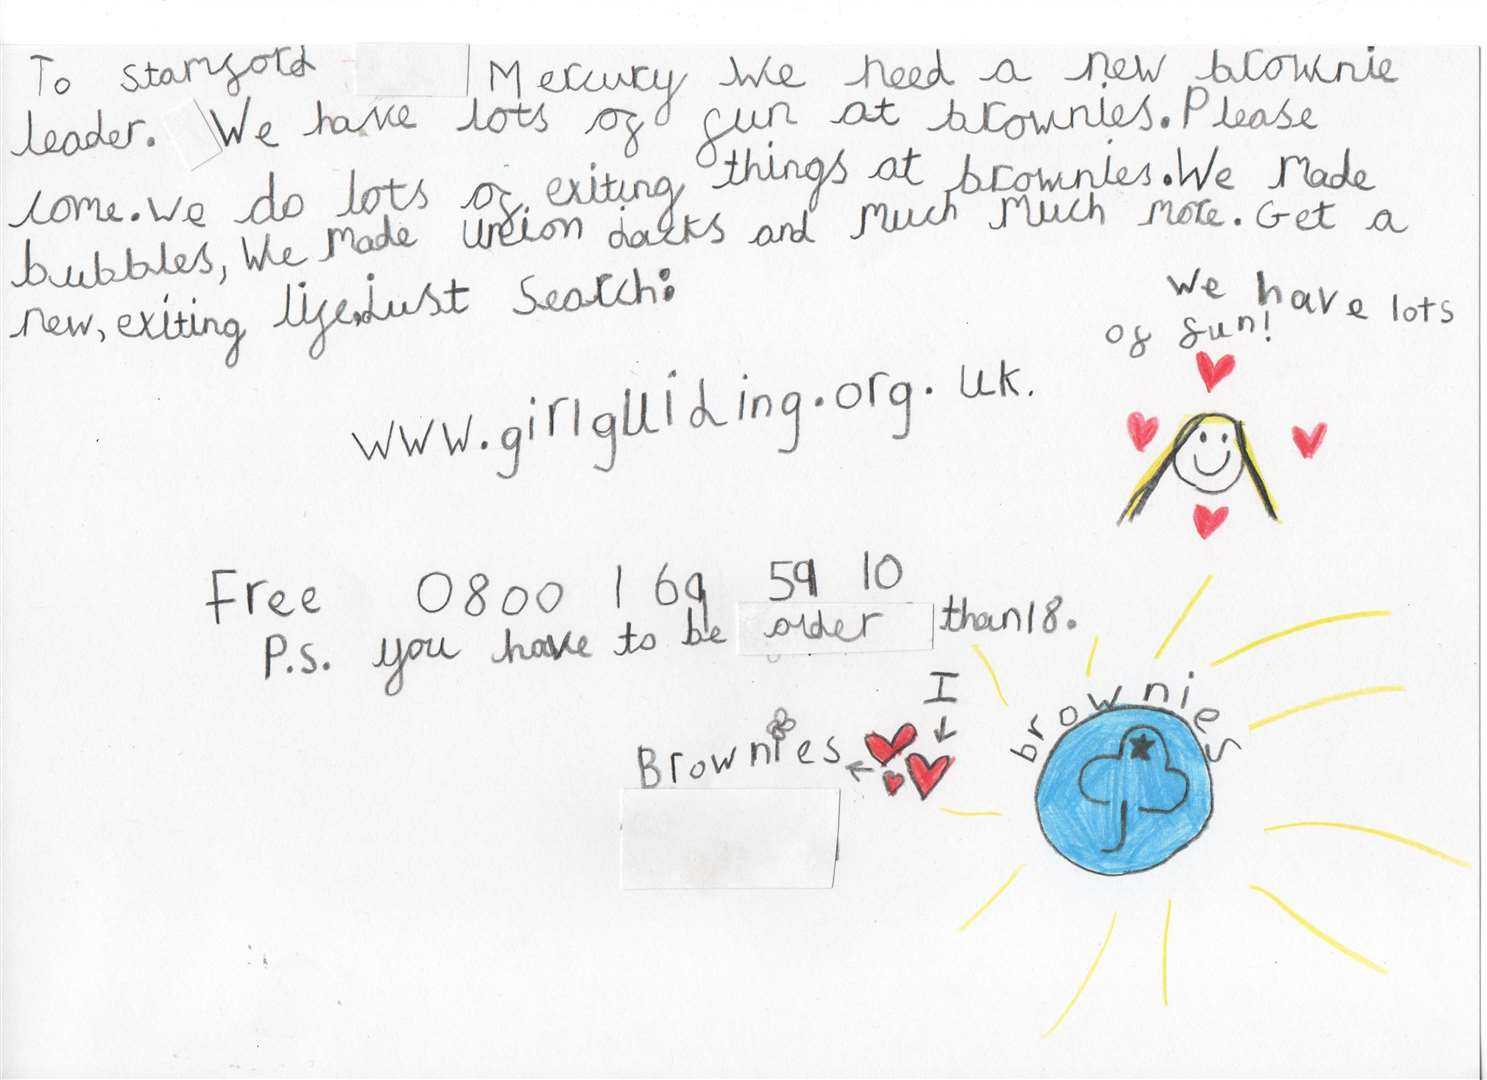 A letter written by 1st ketton Brownies